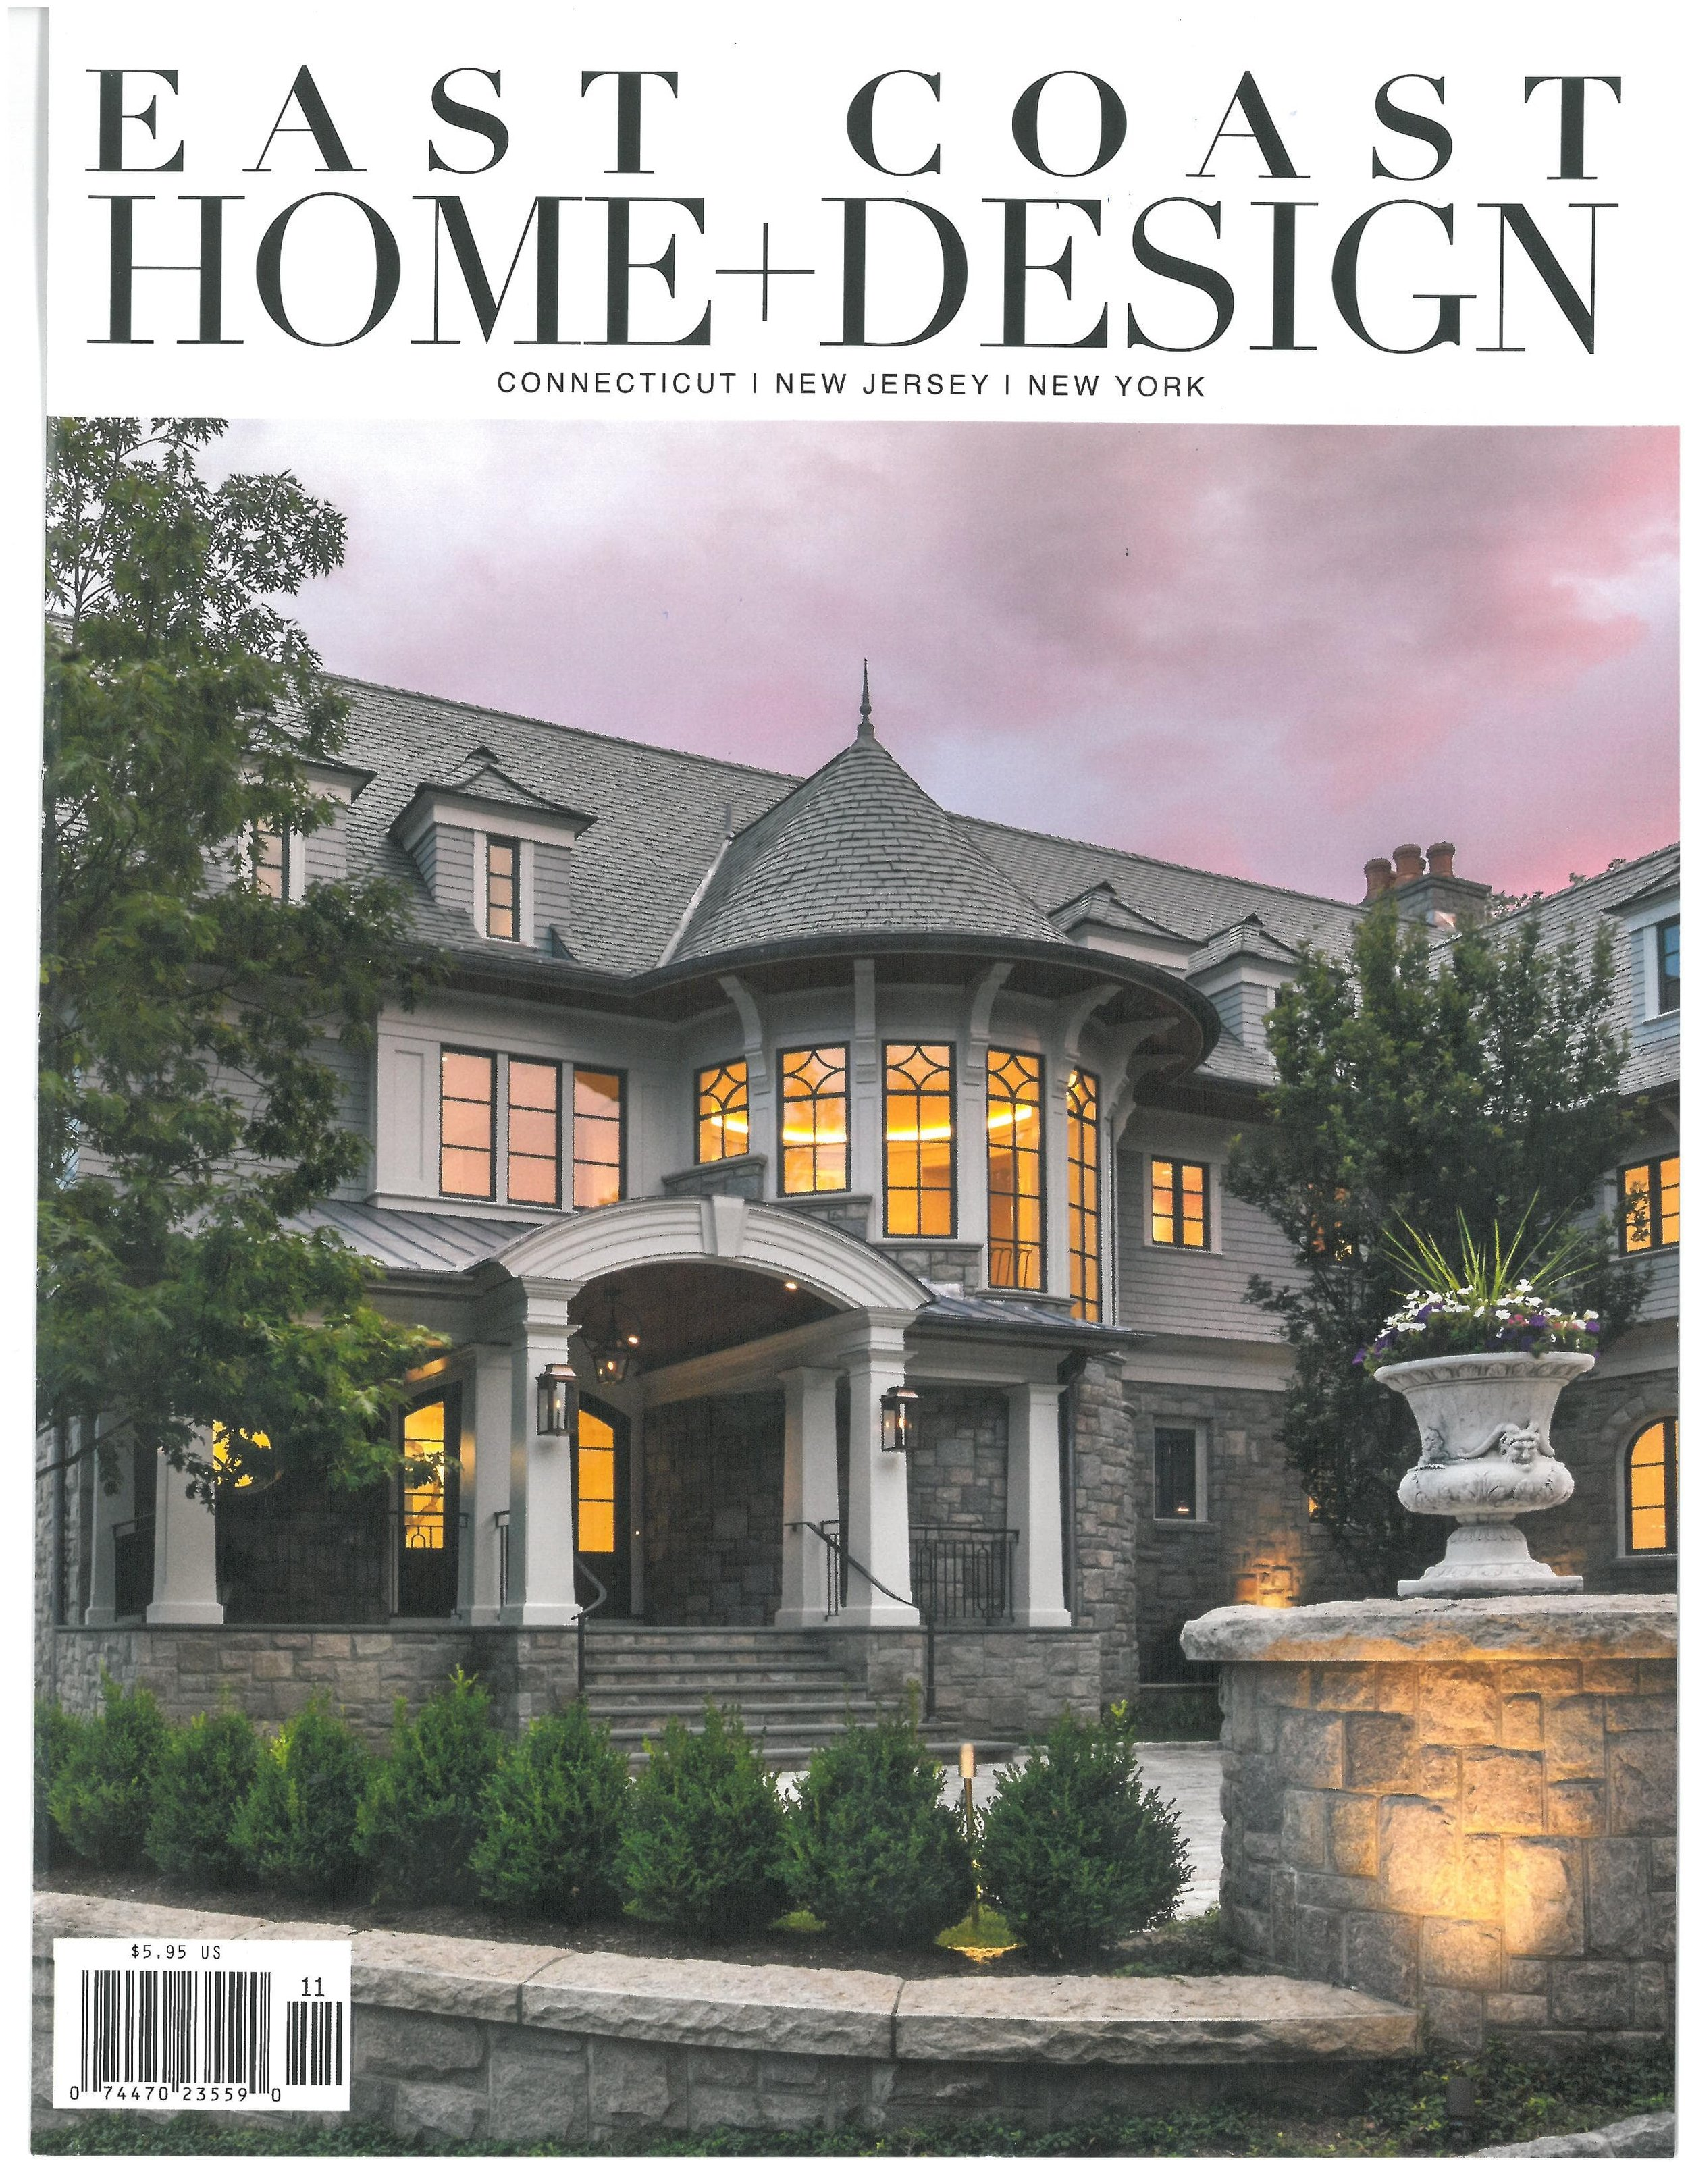 east-coast-home-design-september-2017-brian-macdonald-cover-jpg-web.jpg